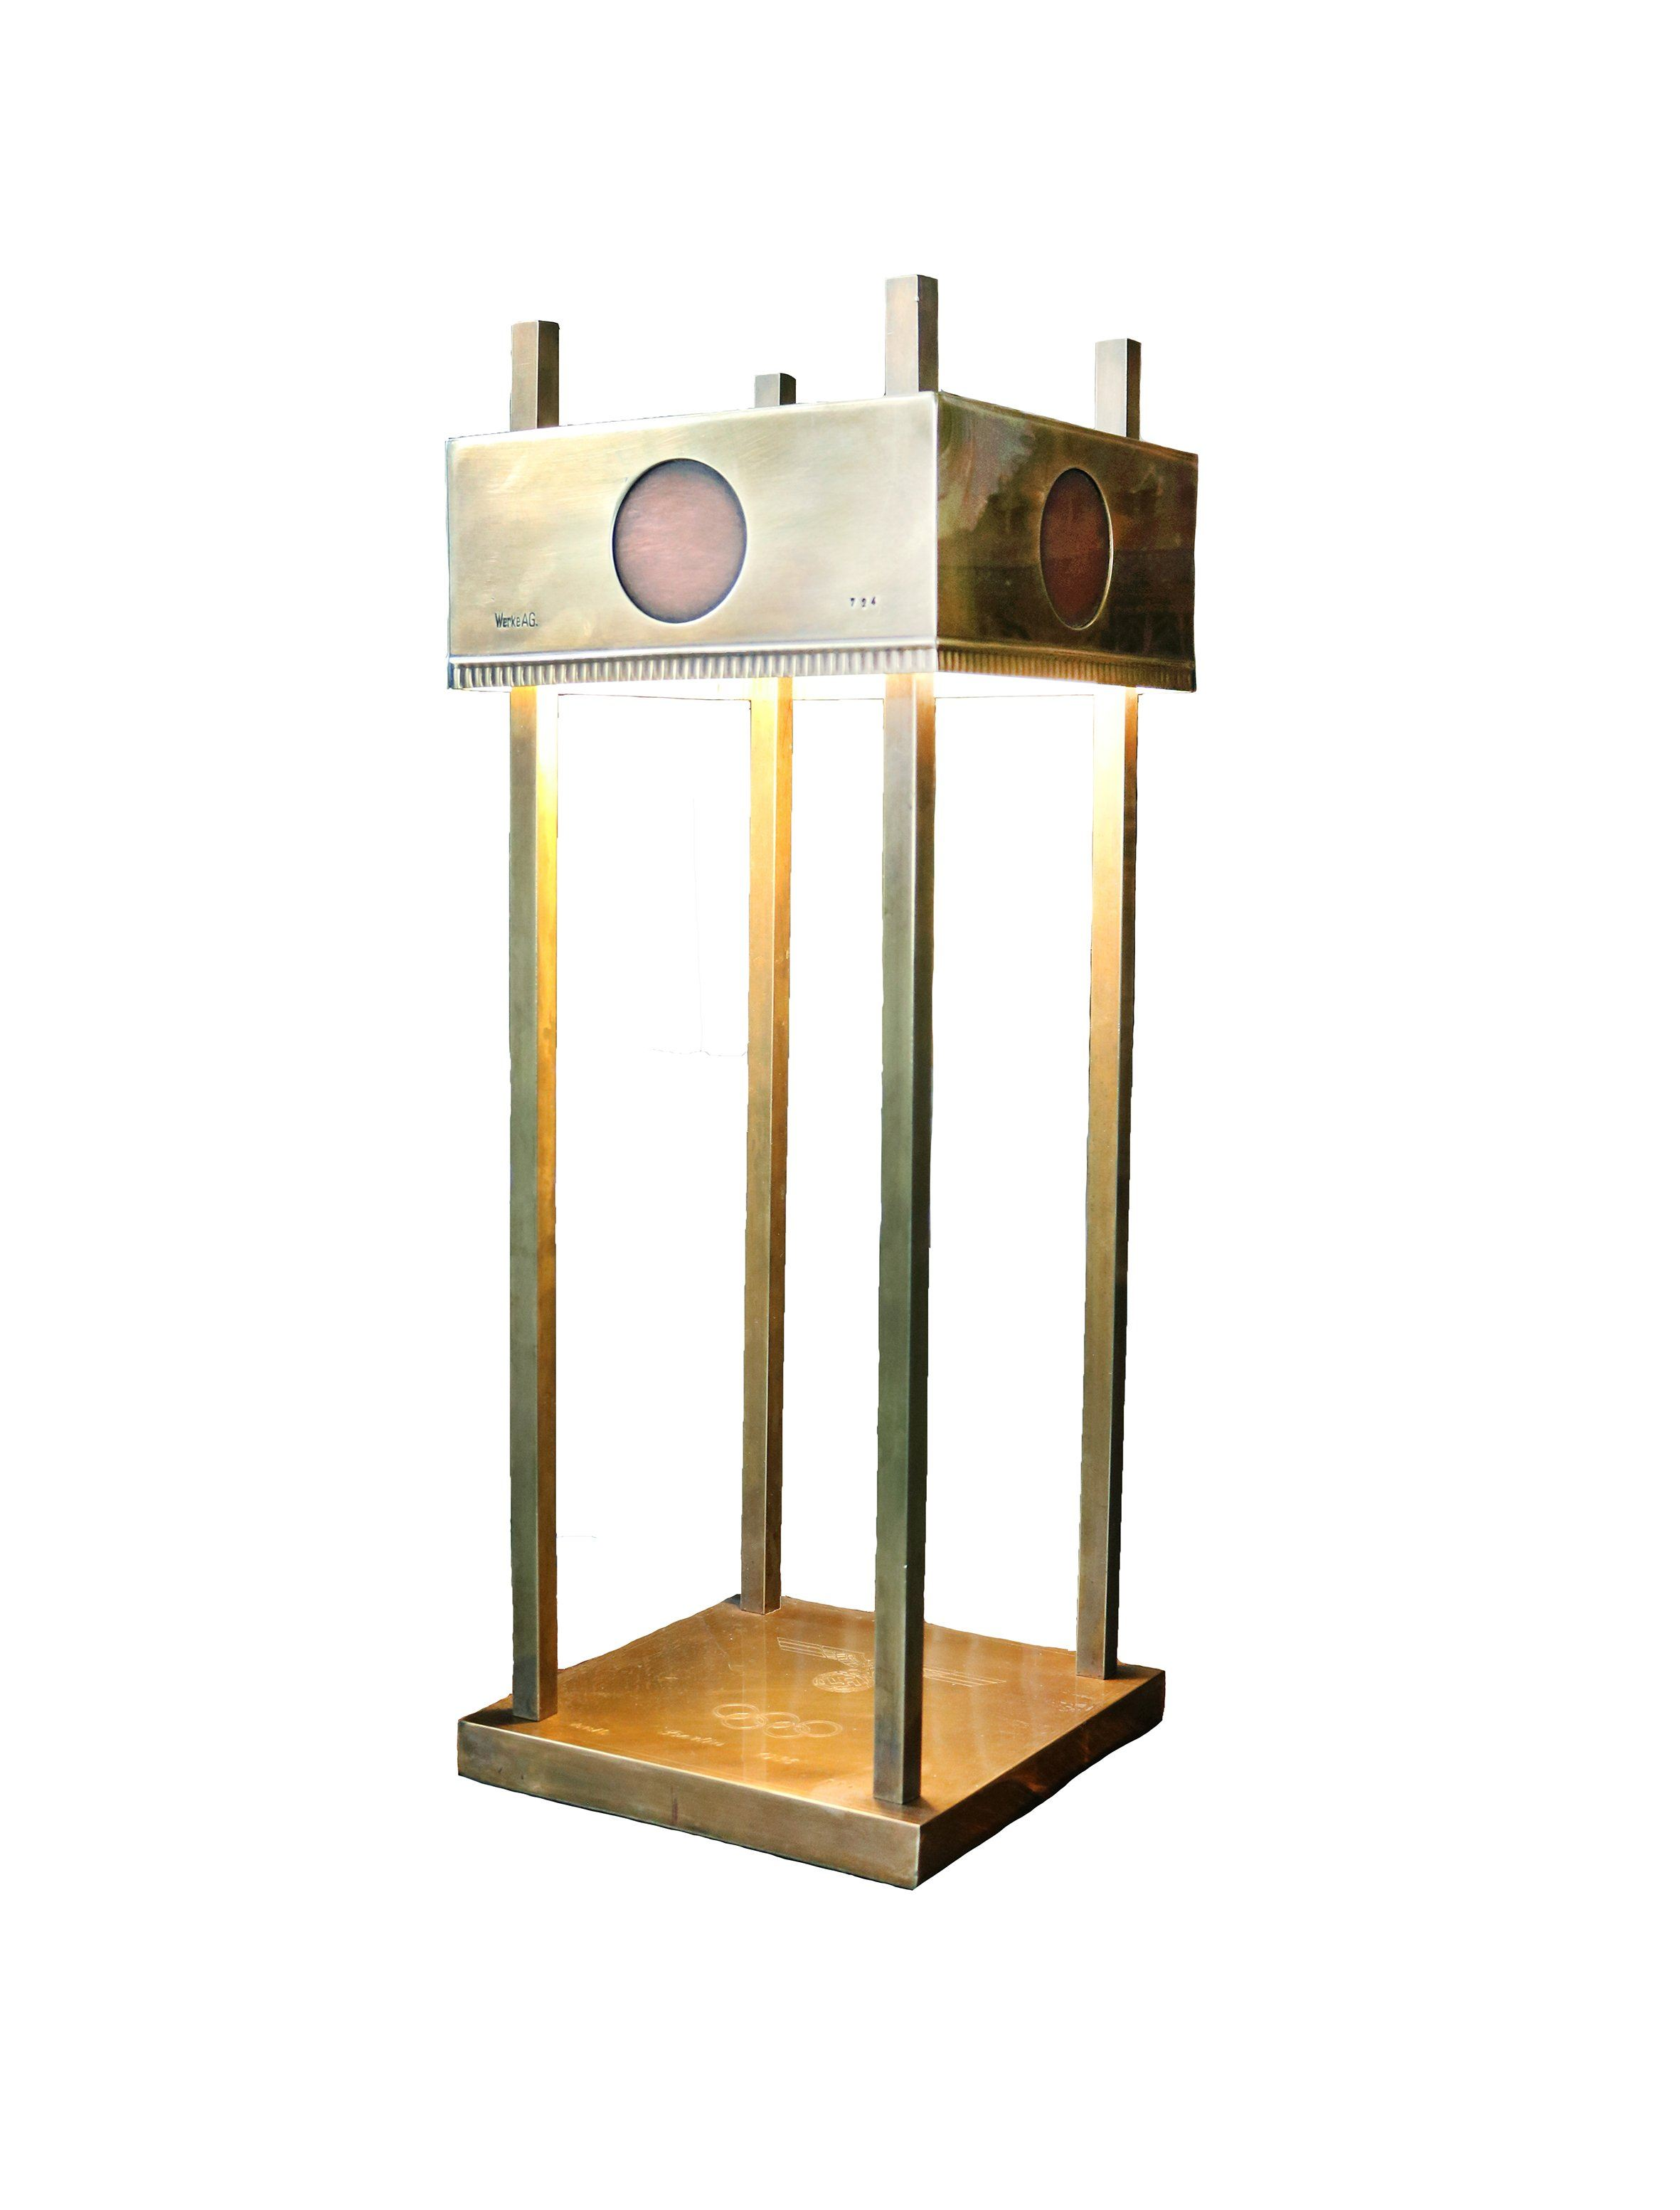 1936 Olympics Brass Table Lamp - A Modern Grand Tour